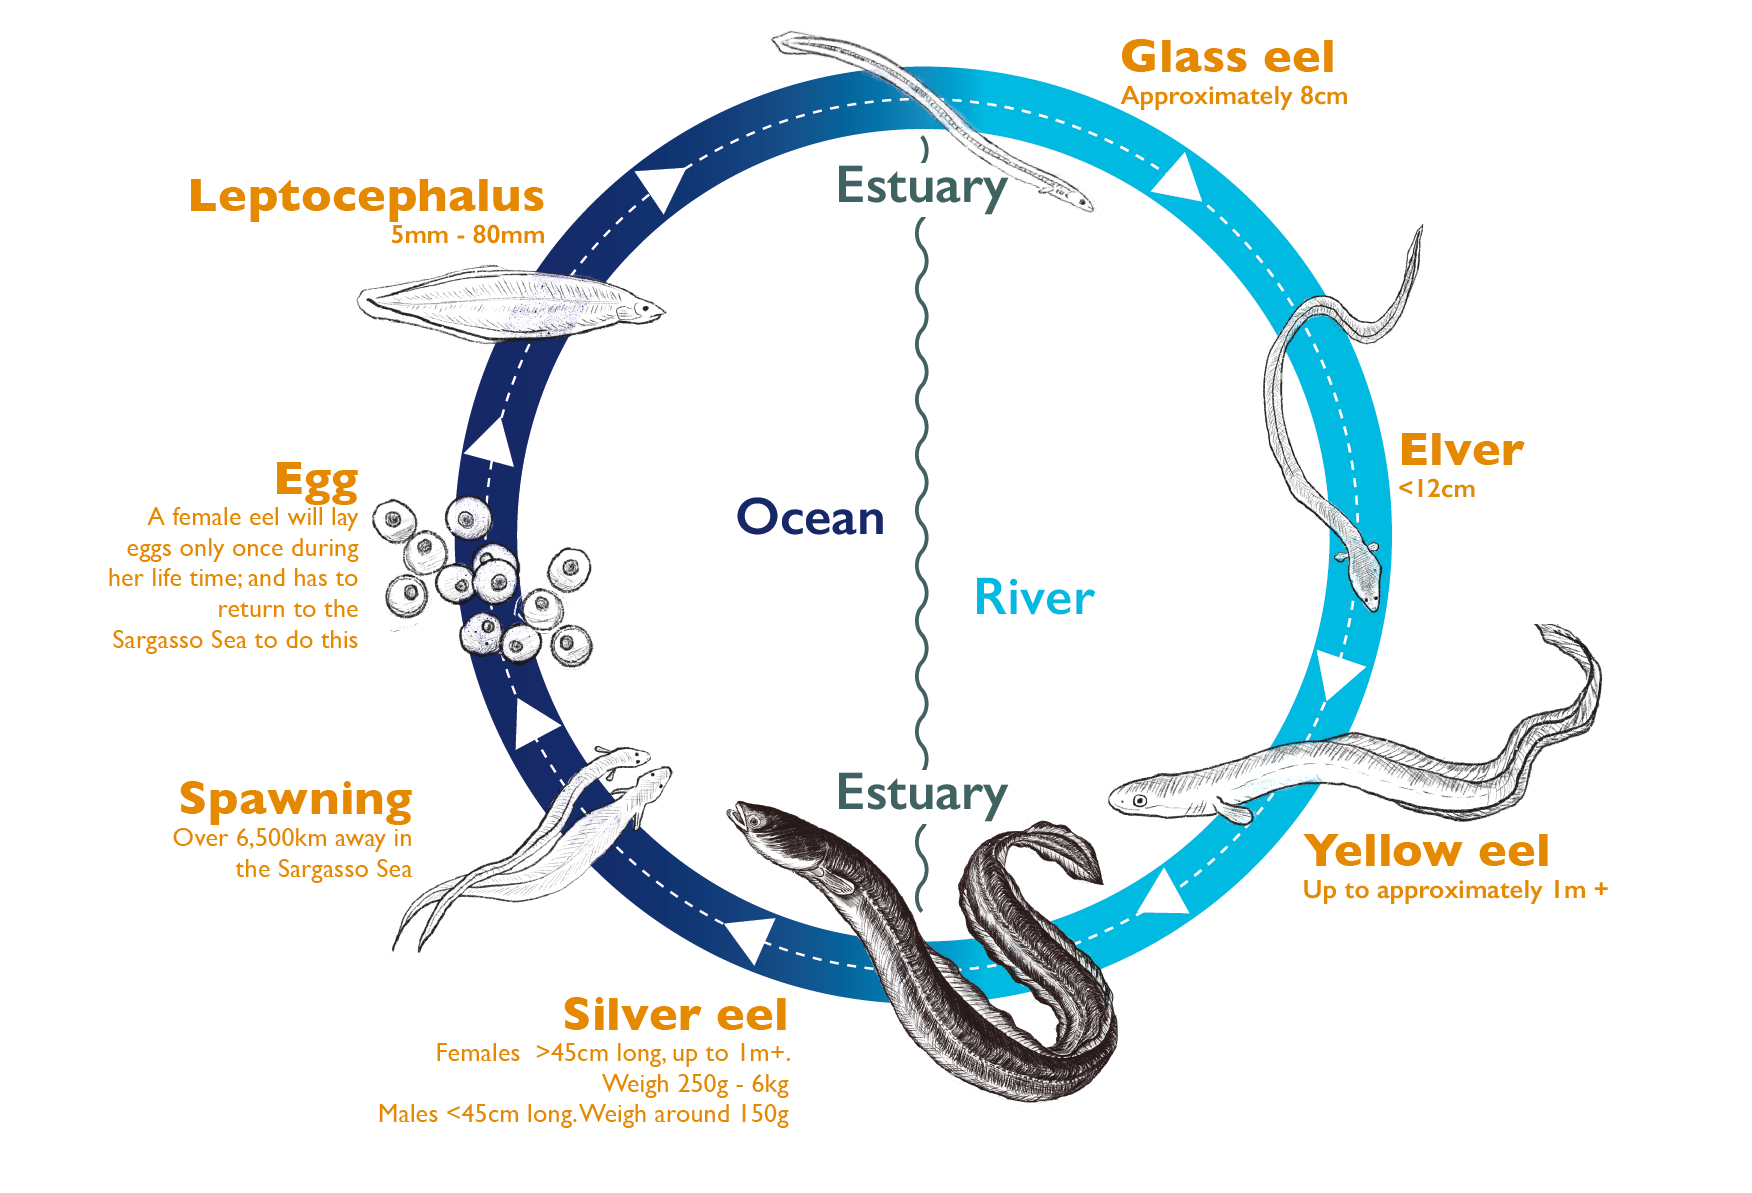 The Life Cycle of an European Eel